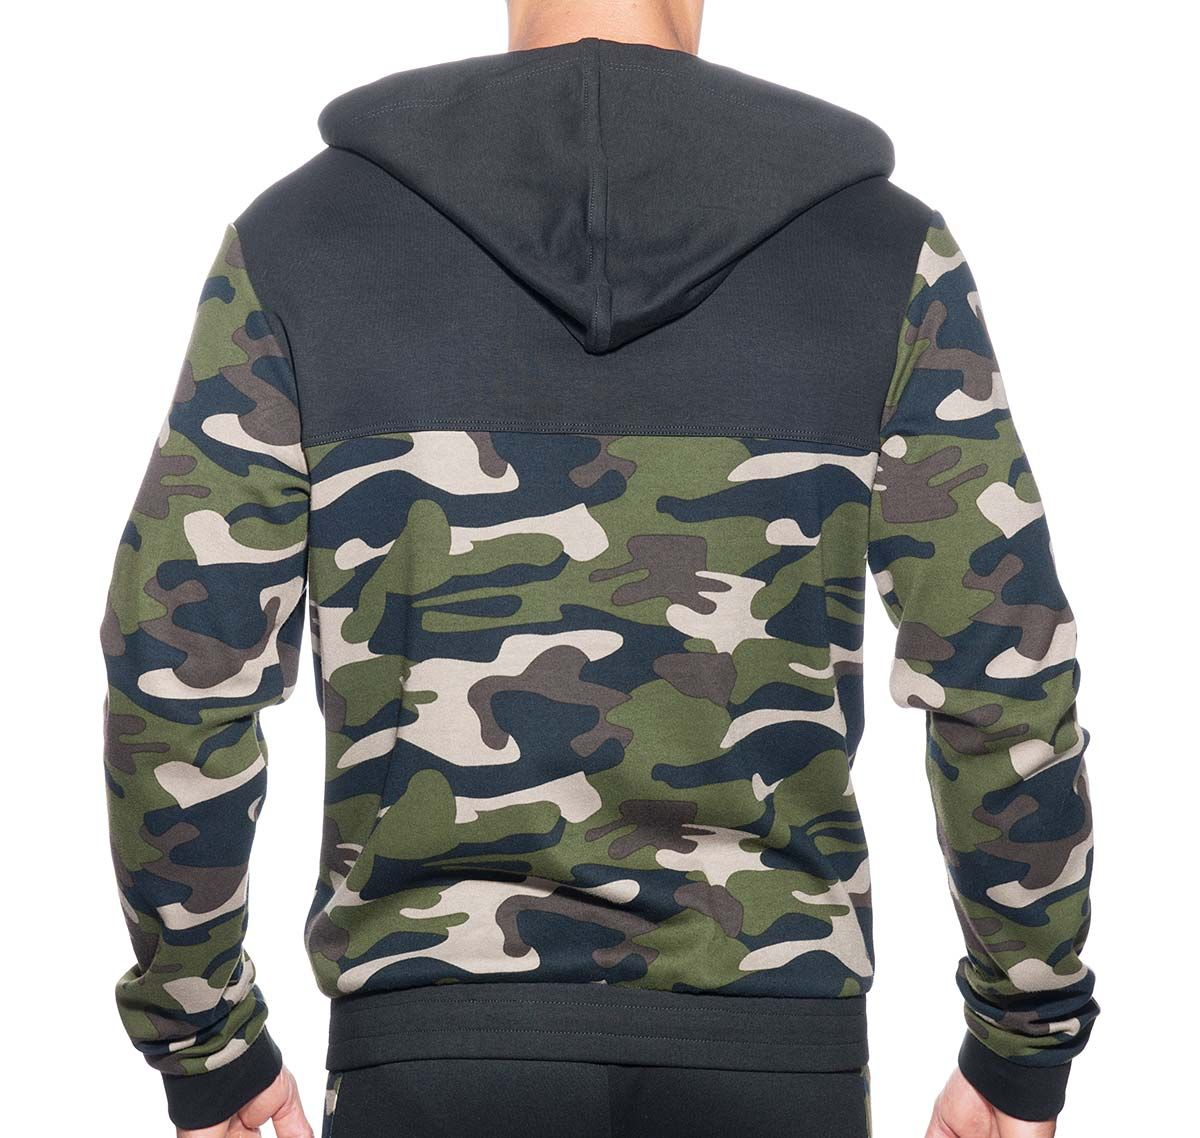 Addicted Jacket SPORT CAMO JACKET AD659, black